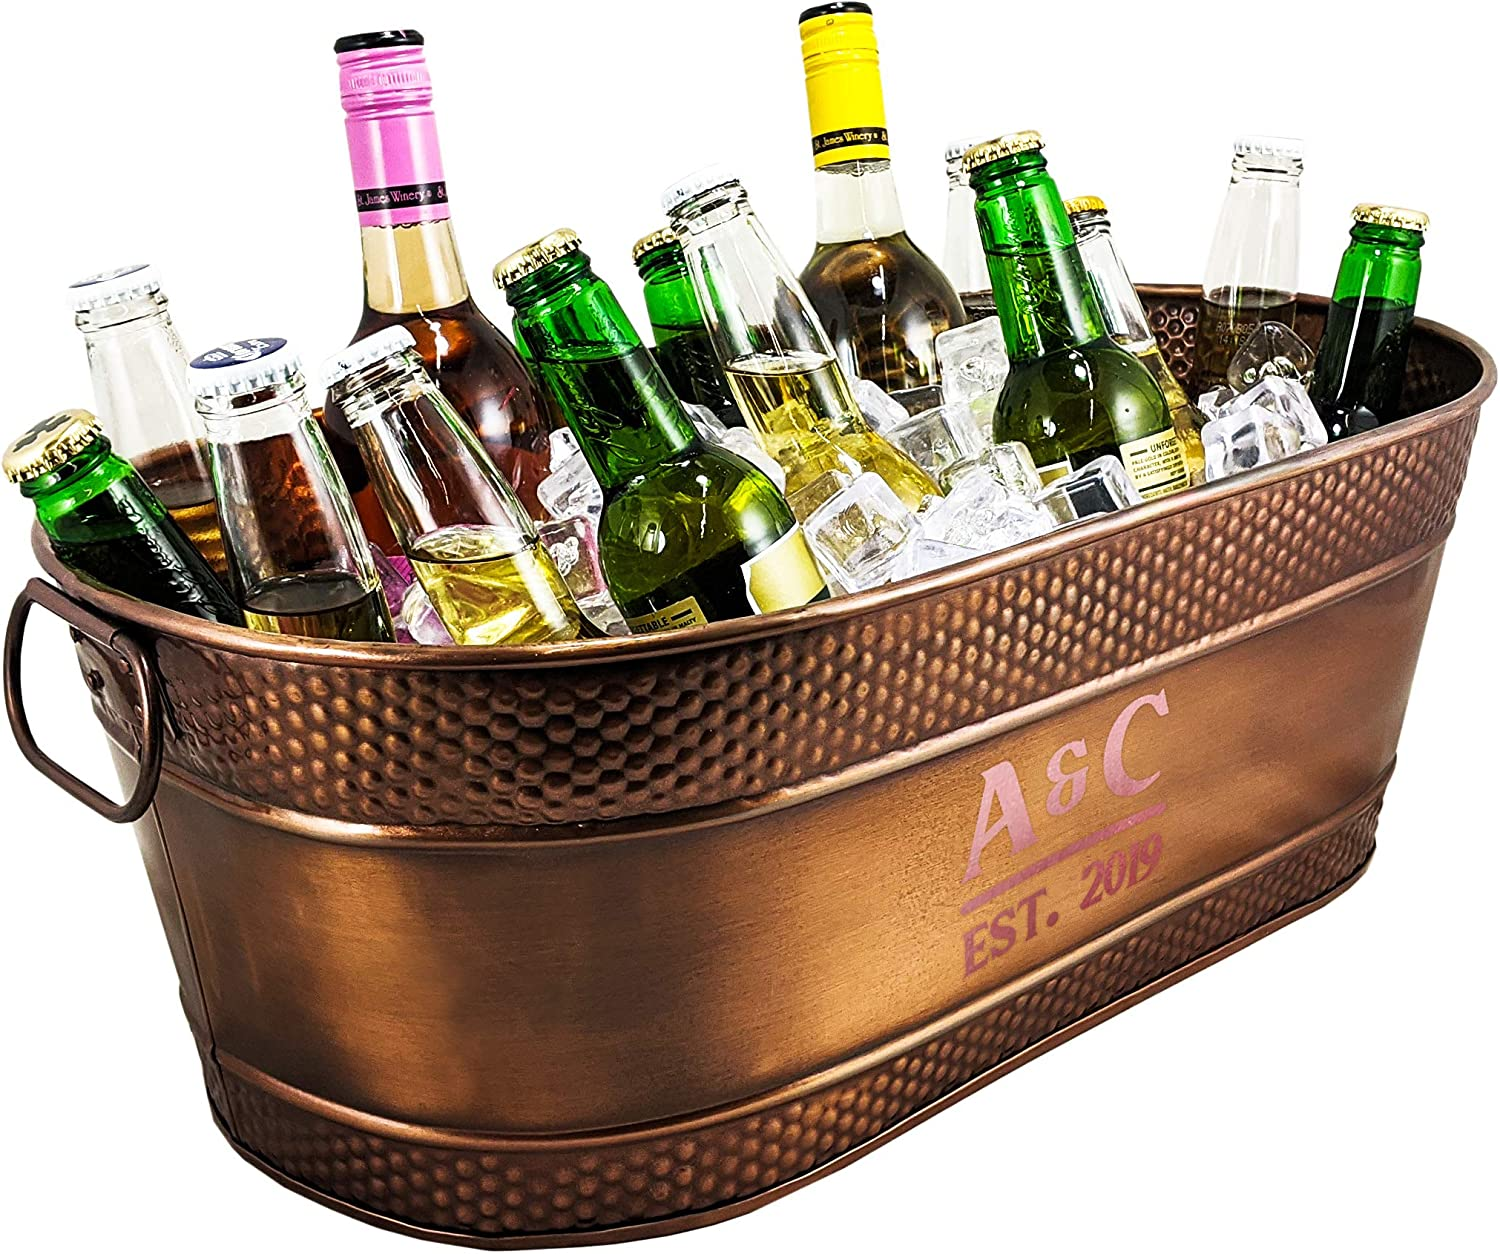 BREKX Personalized Colt Hammered Copper-Finish Galvanized Beverage Tub, Rust-Resistant and Leak-Proof Ice and Drink Bucket with Handles, 15 Quarts